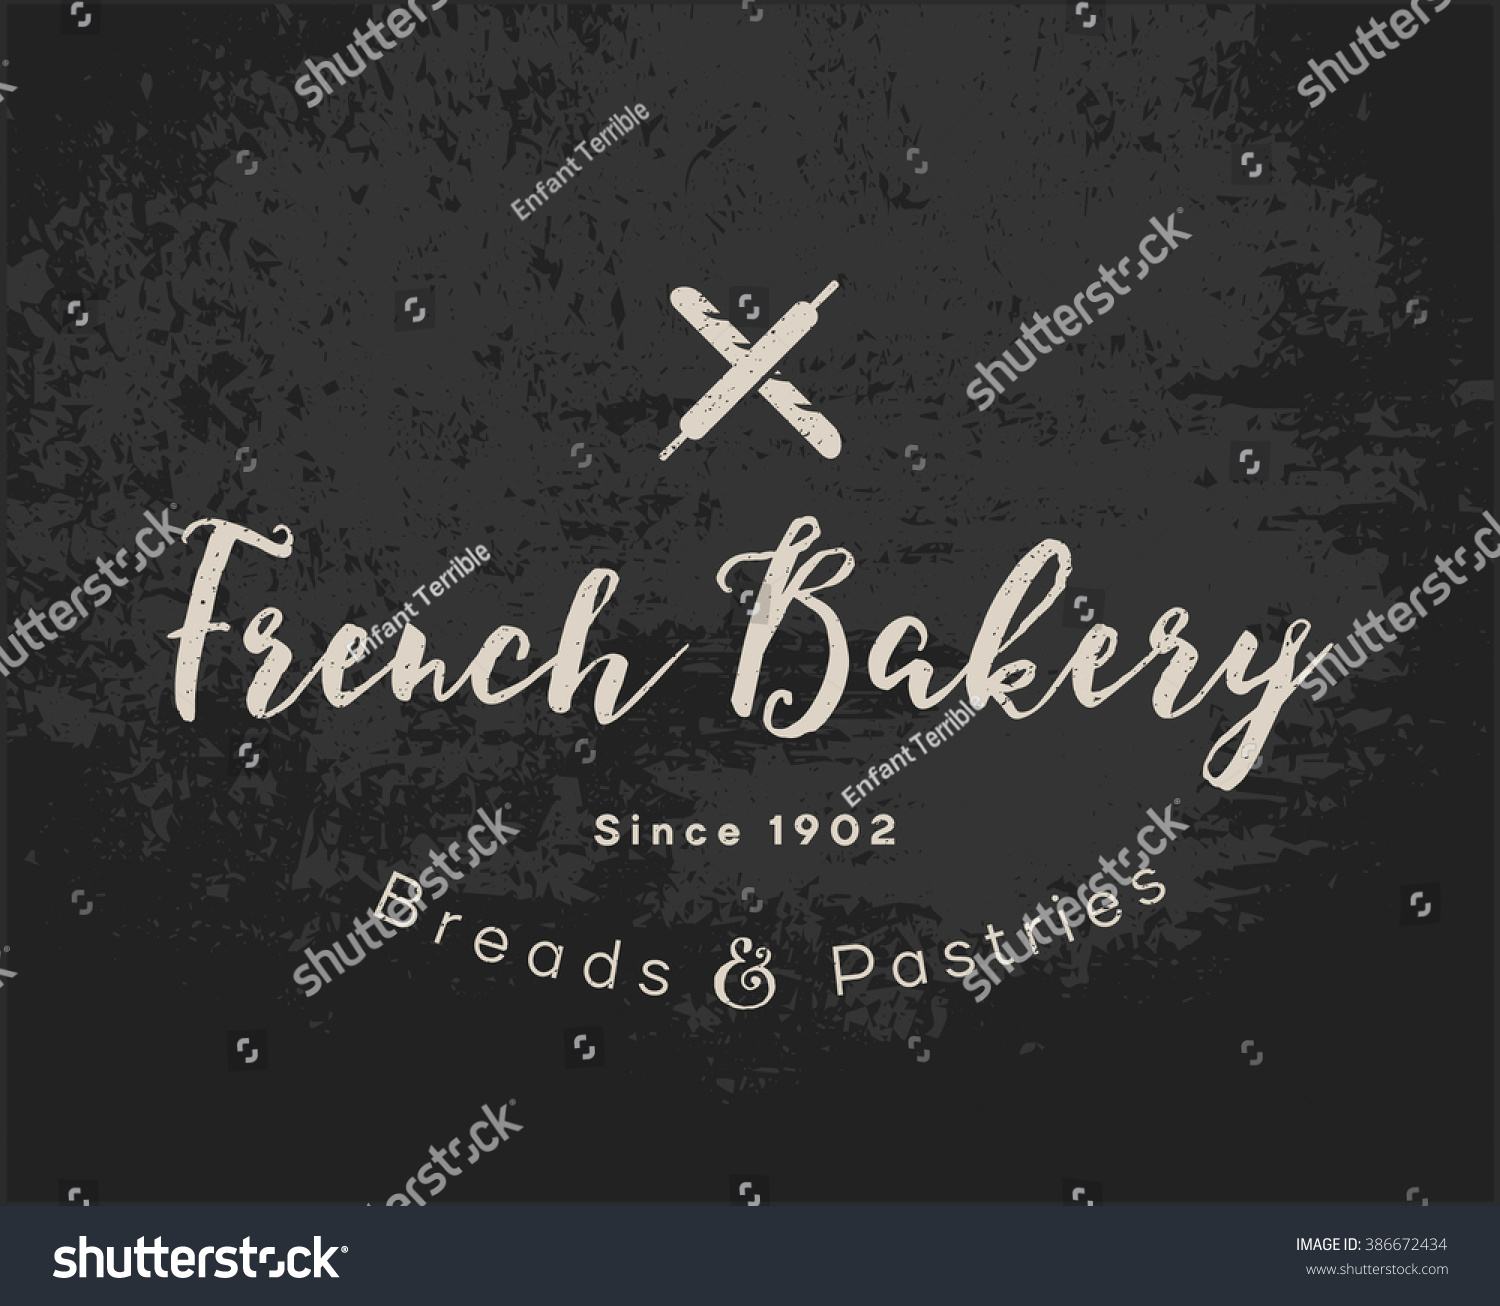 Coffee Shop Pastryshop Bakery Confectionery Business Vector – Sample Chalkboard Menu Template